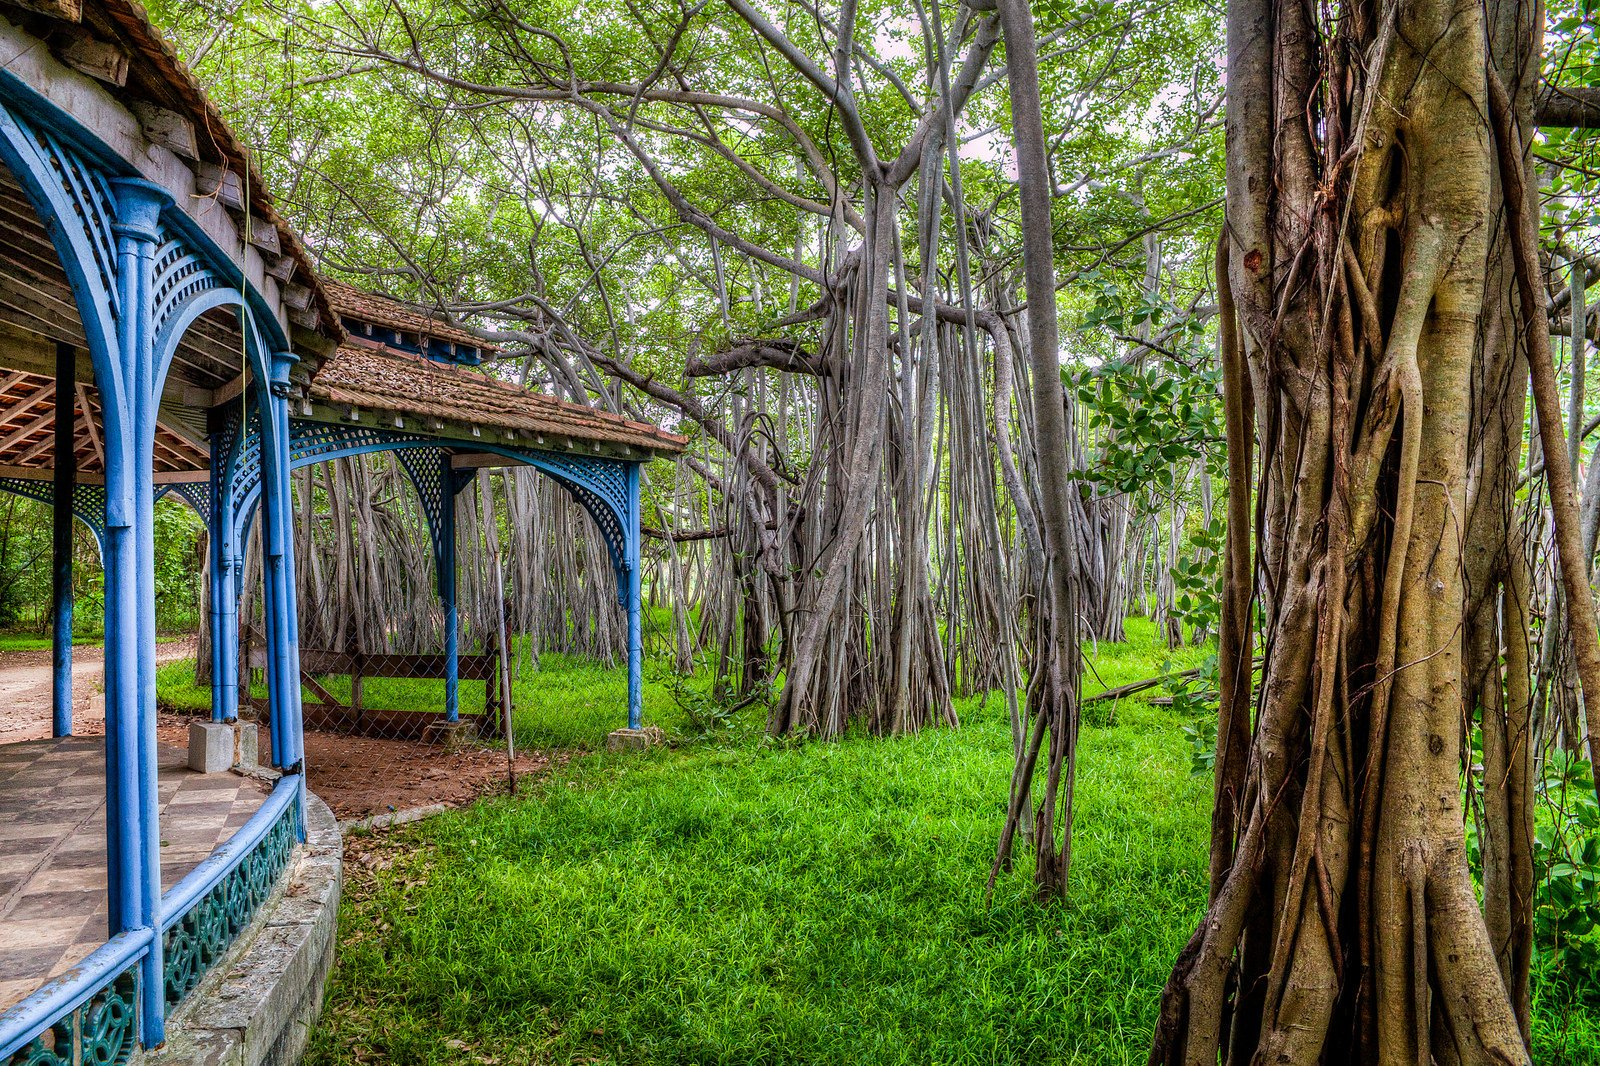 17. Experience calm at the Adyar Banyan Tree